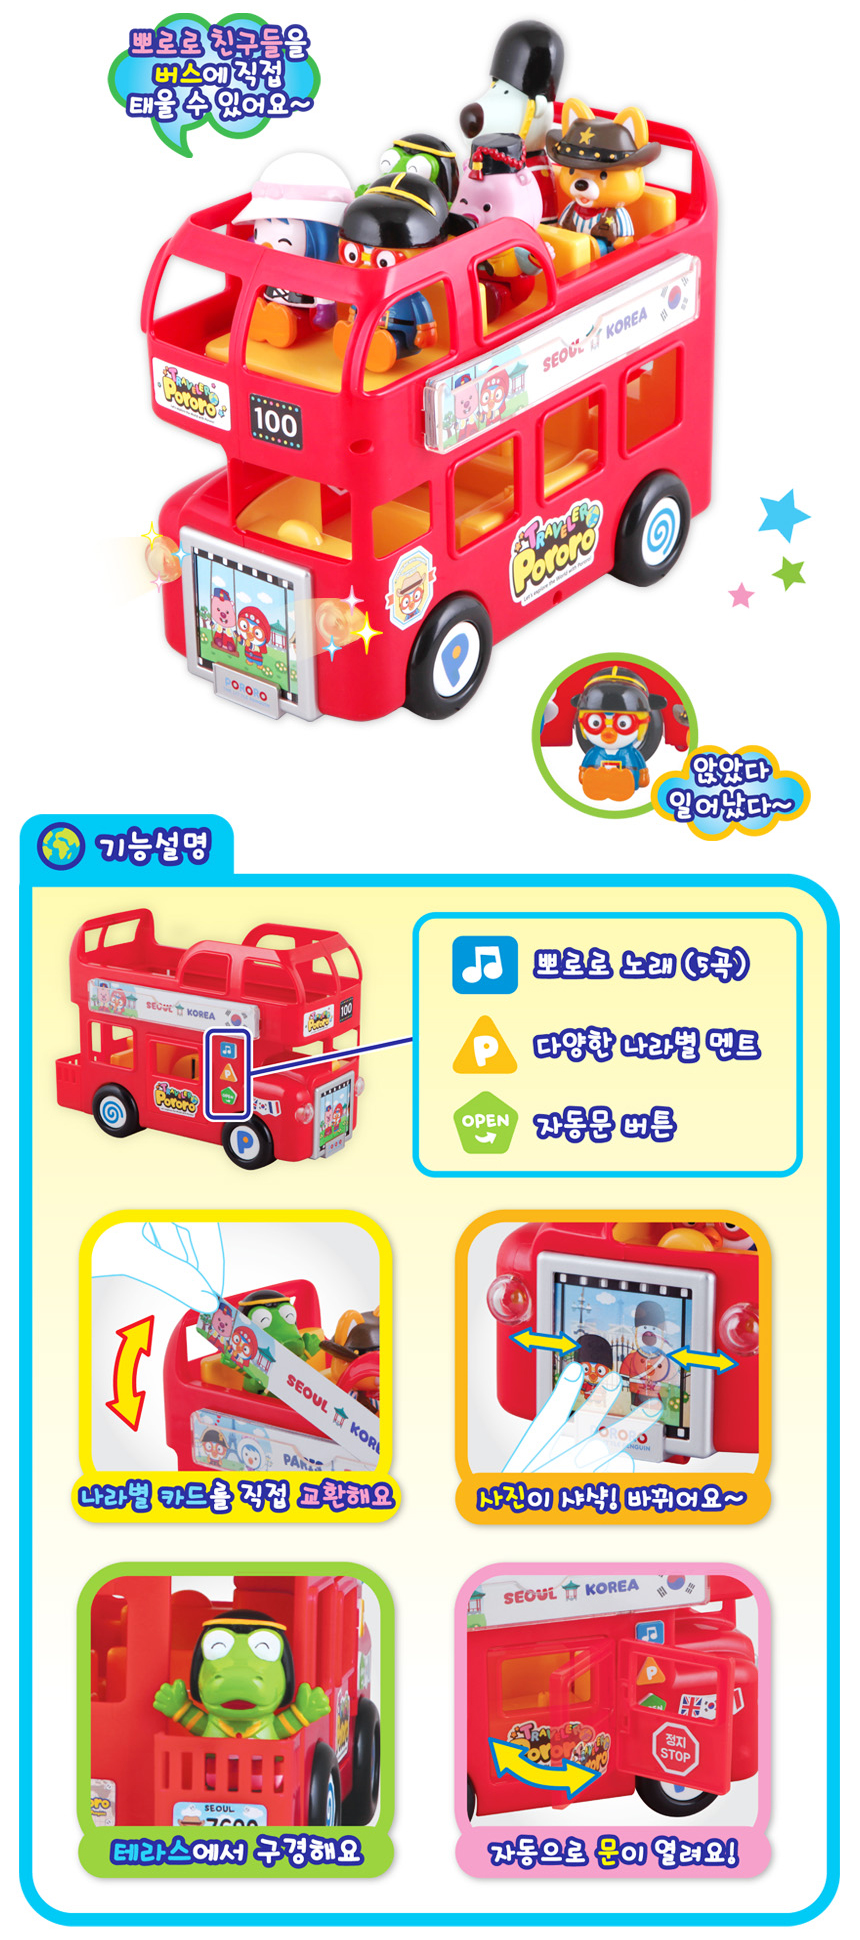 pororo_travel_bus_03.jpg